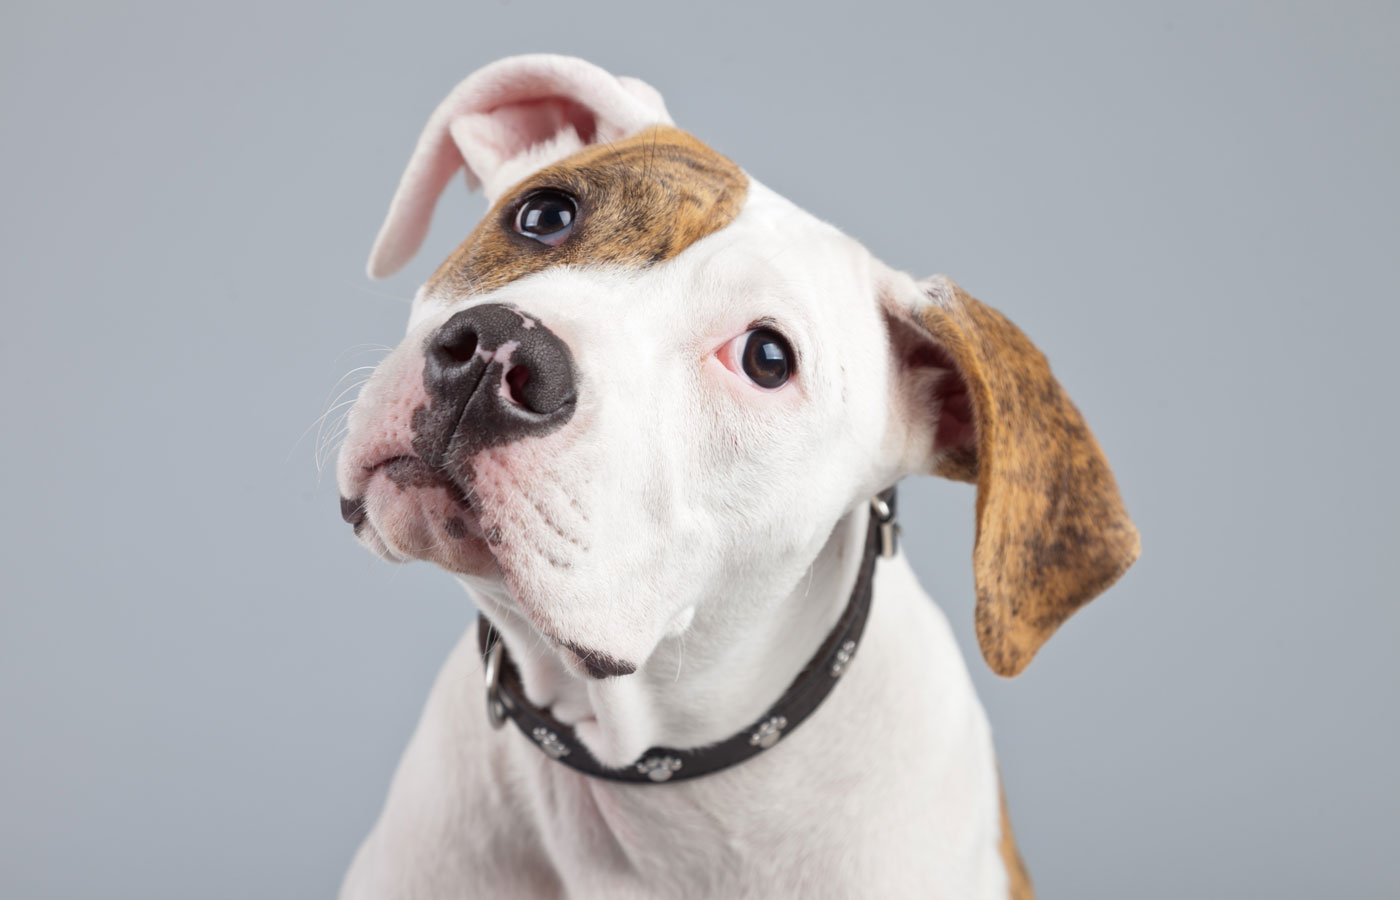 Puppy american bulldog white with red spots isolated against grey background. Studio portrait.